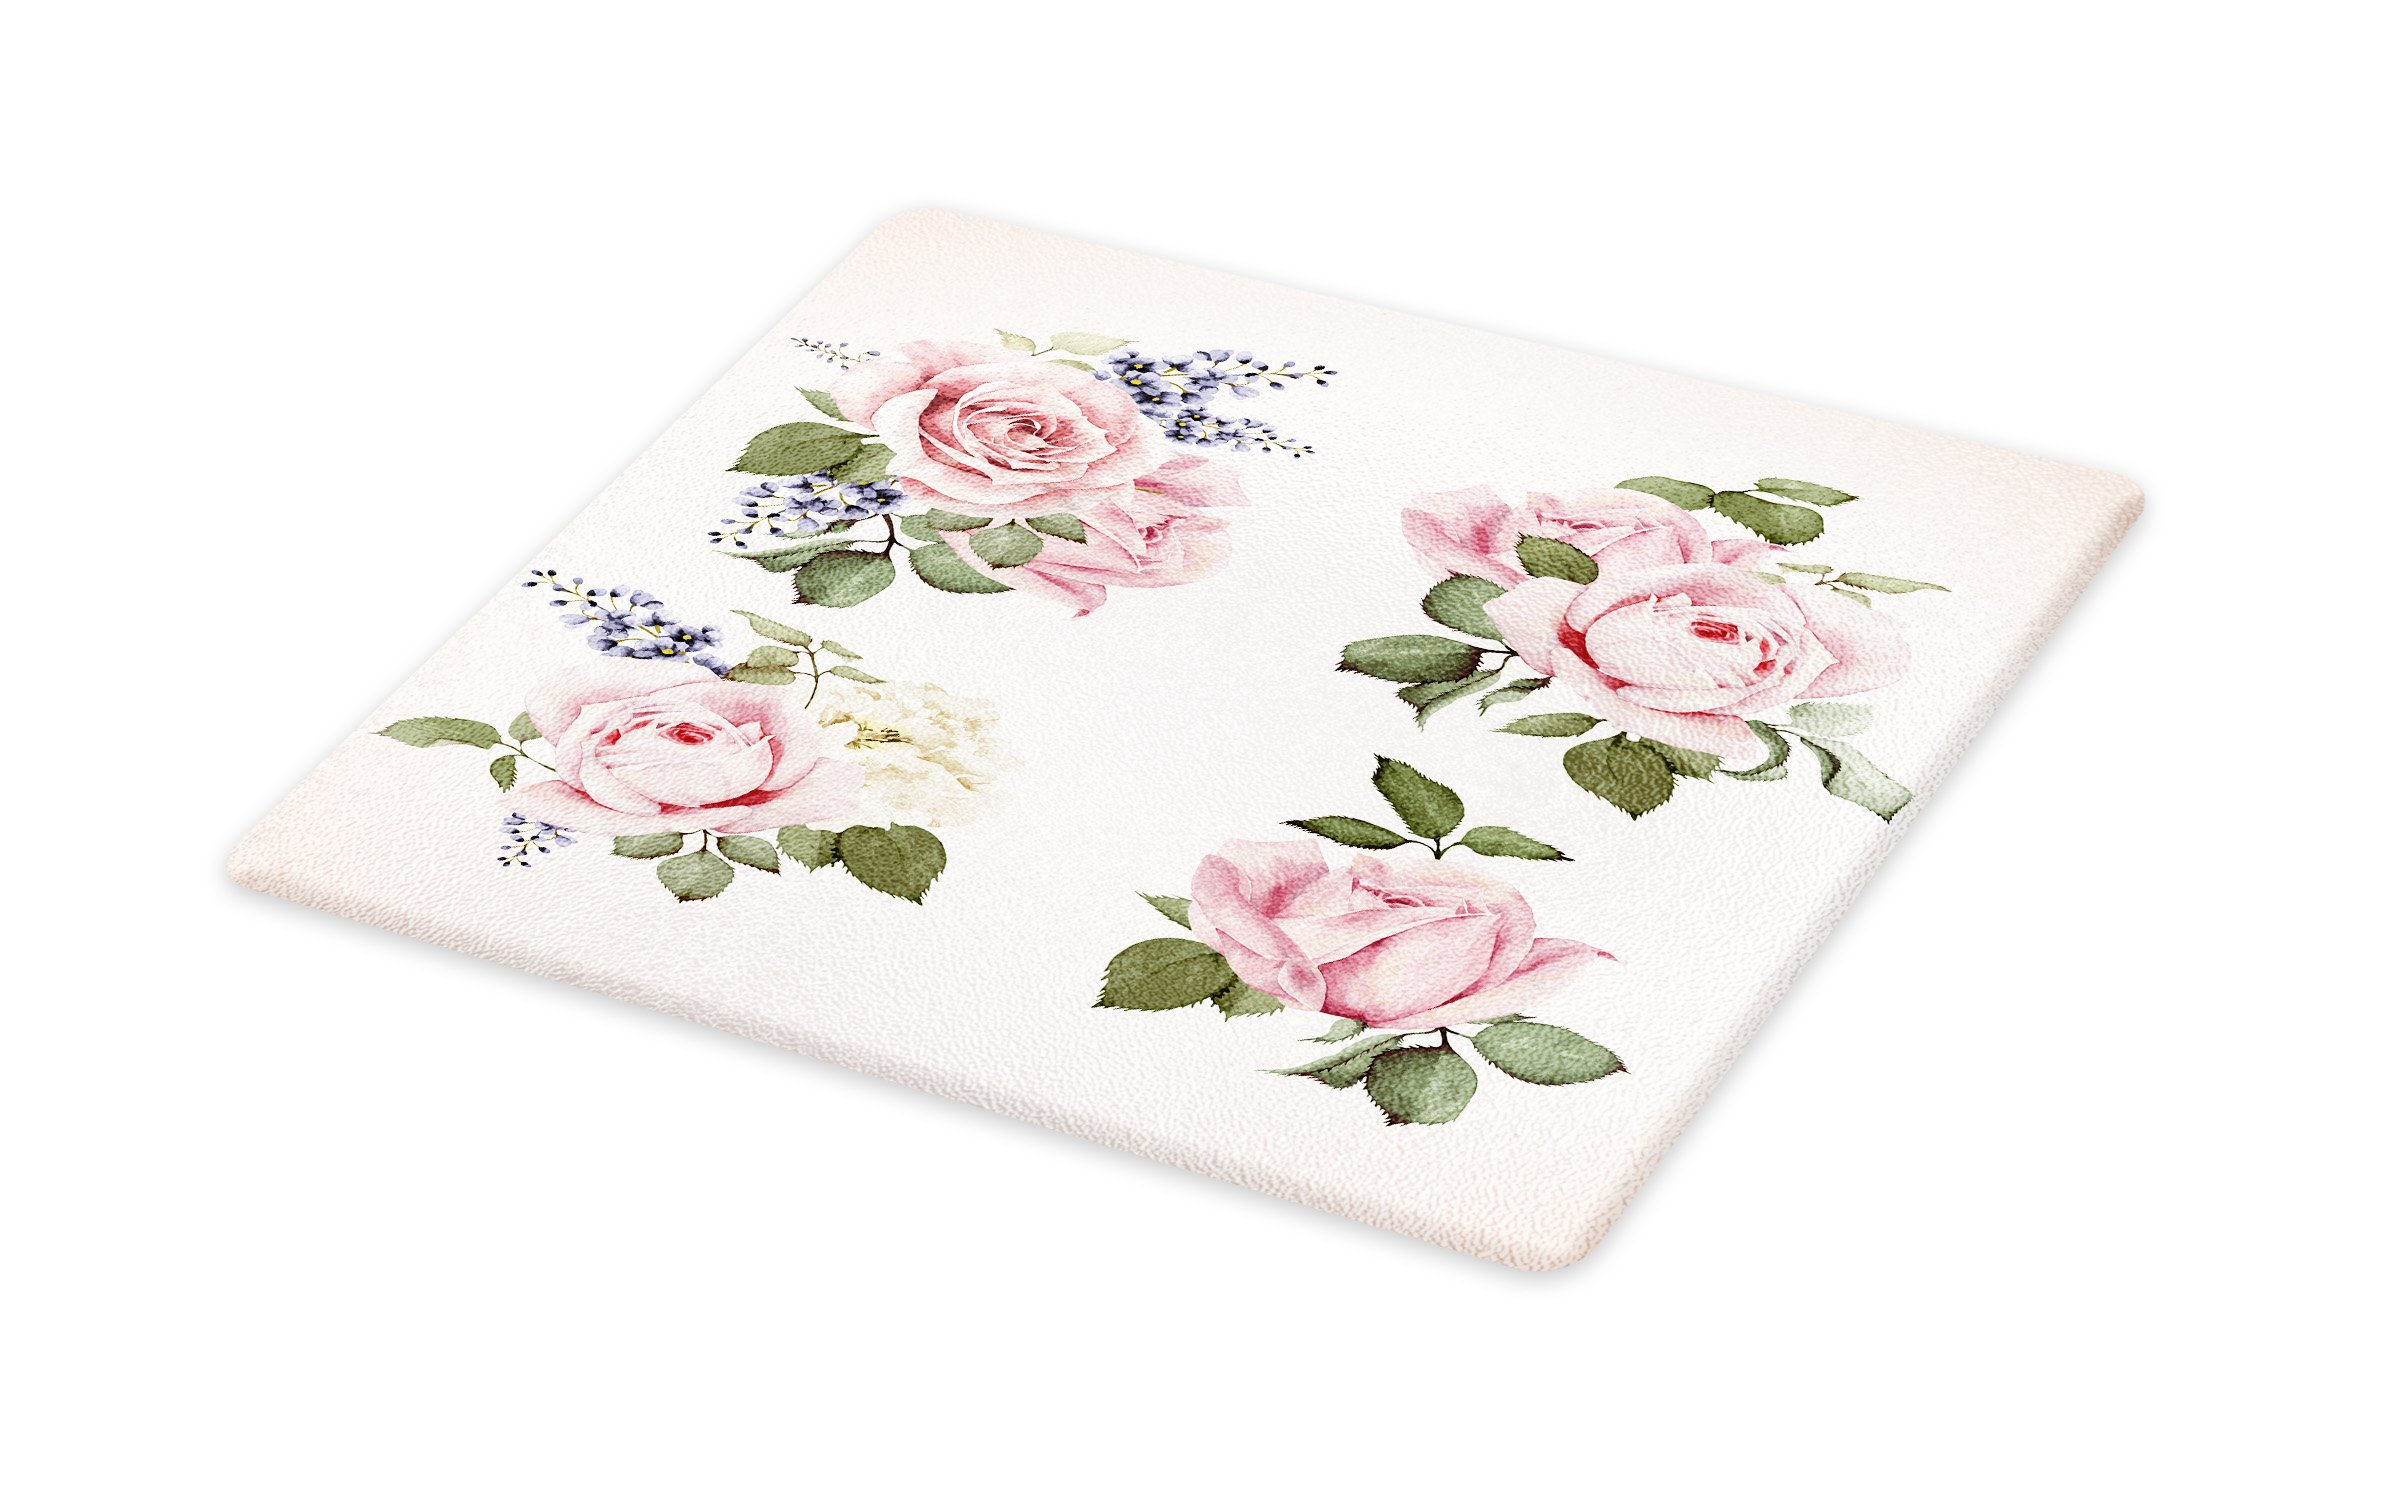 Lunarable Vintage Cutting Board, Vintage Country Style Floral Roses Wreath Bouquet and Corsage Wildflowers Design, Decorative Tempered Glass Cutting and Serving Board, Small Size, Pastel Pink